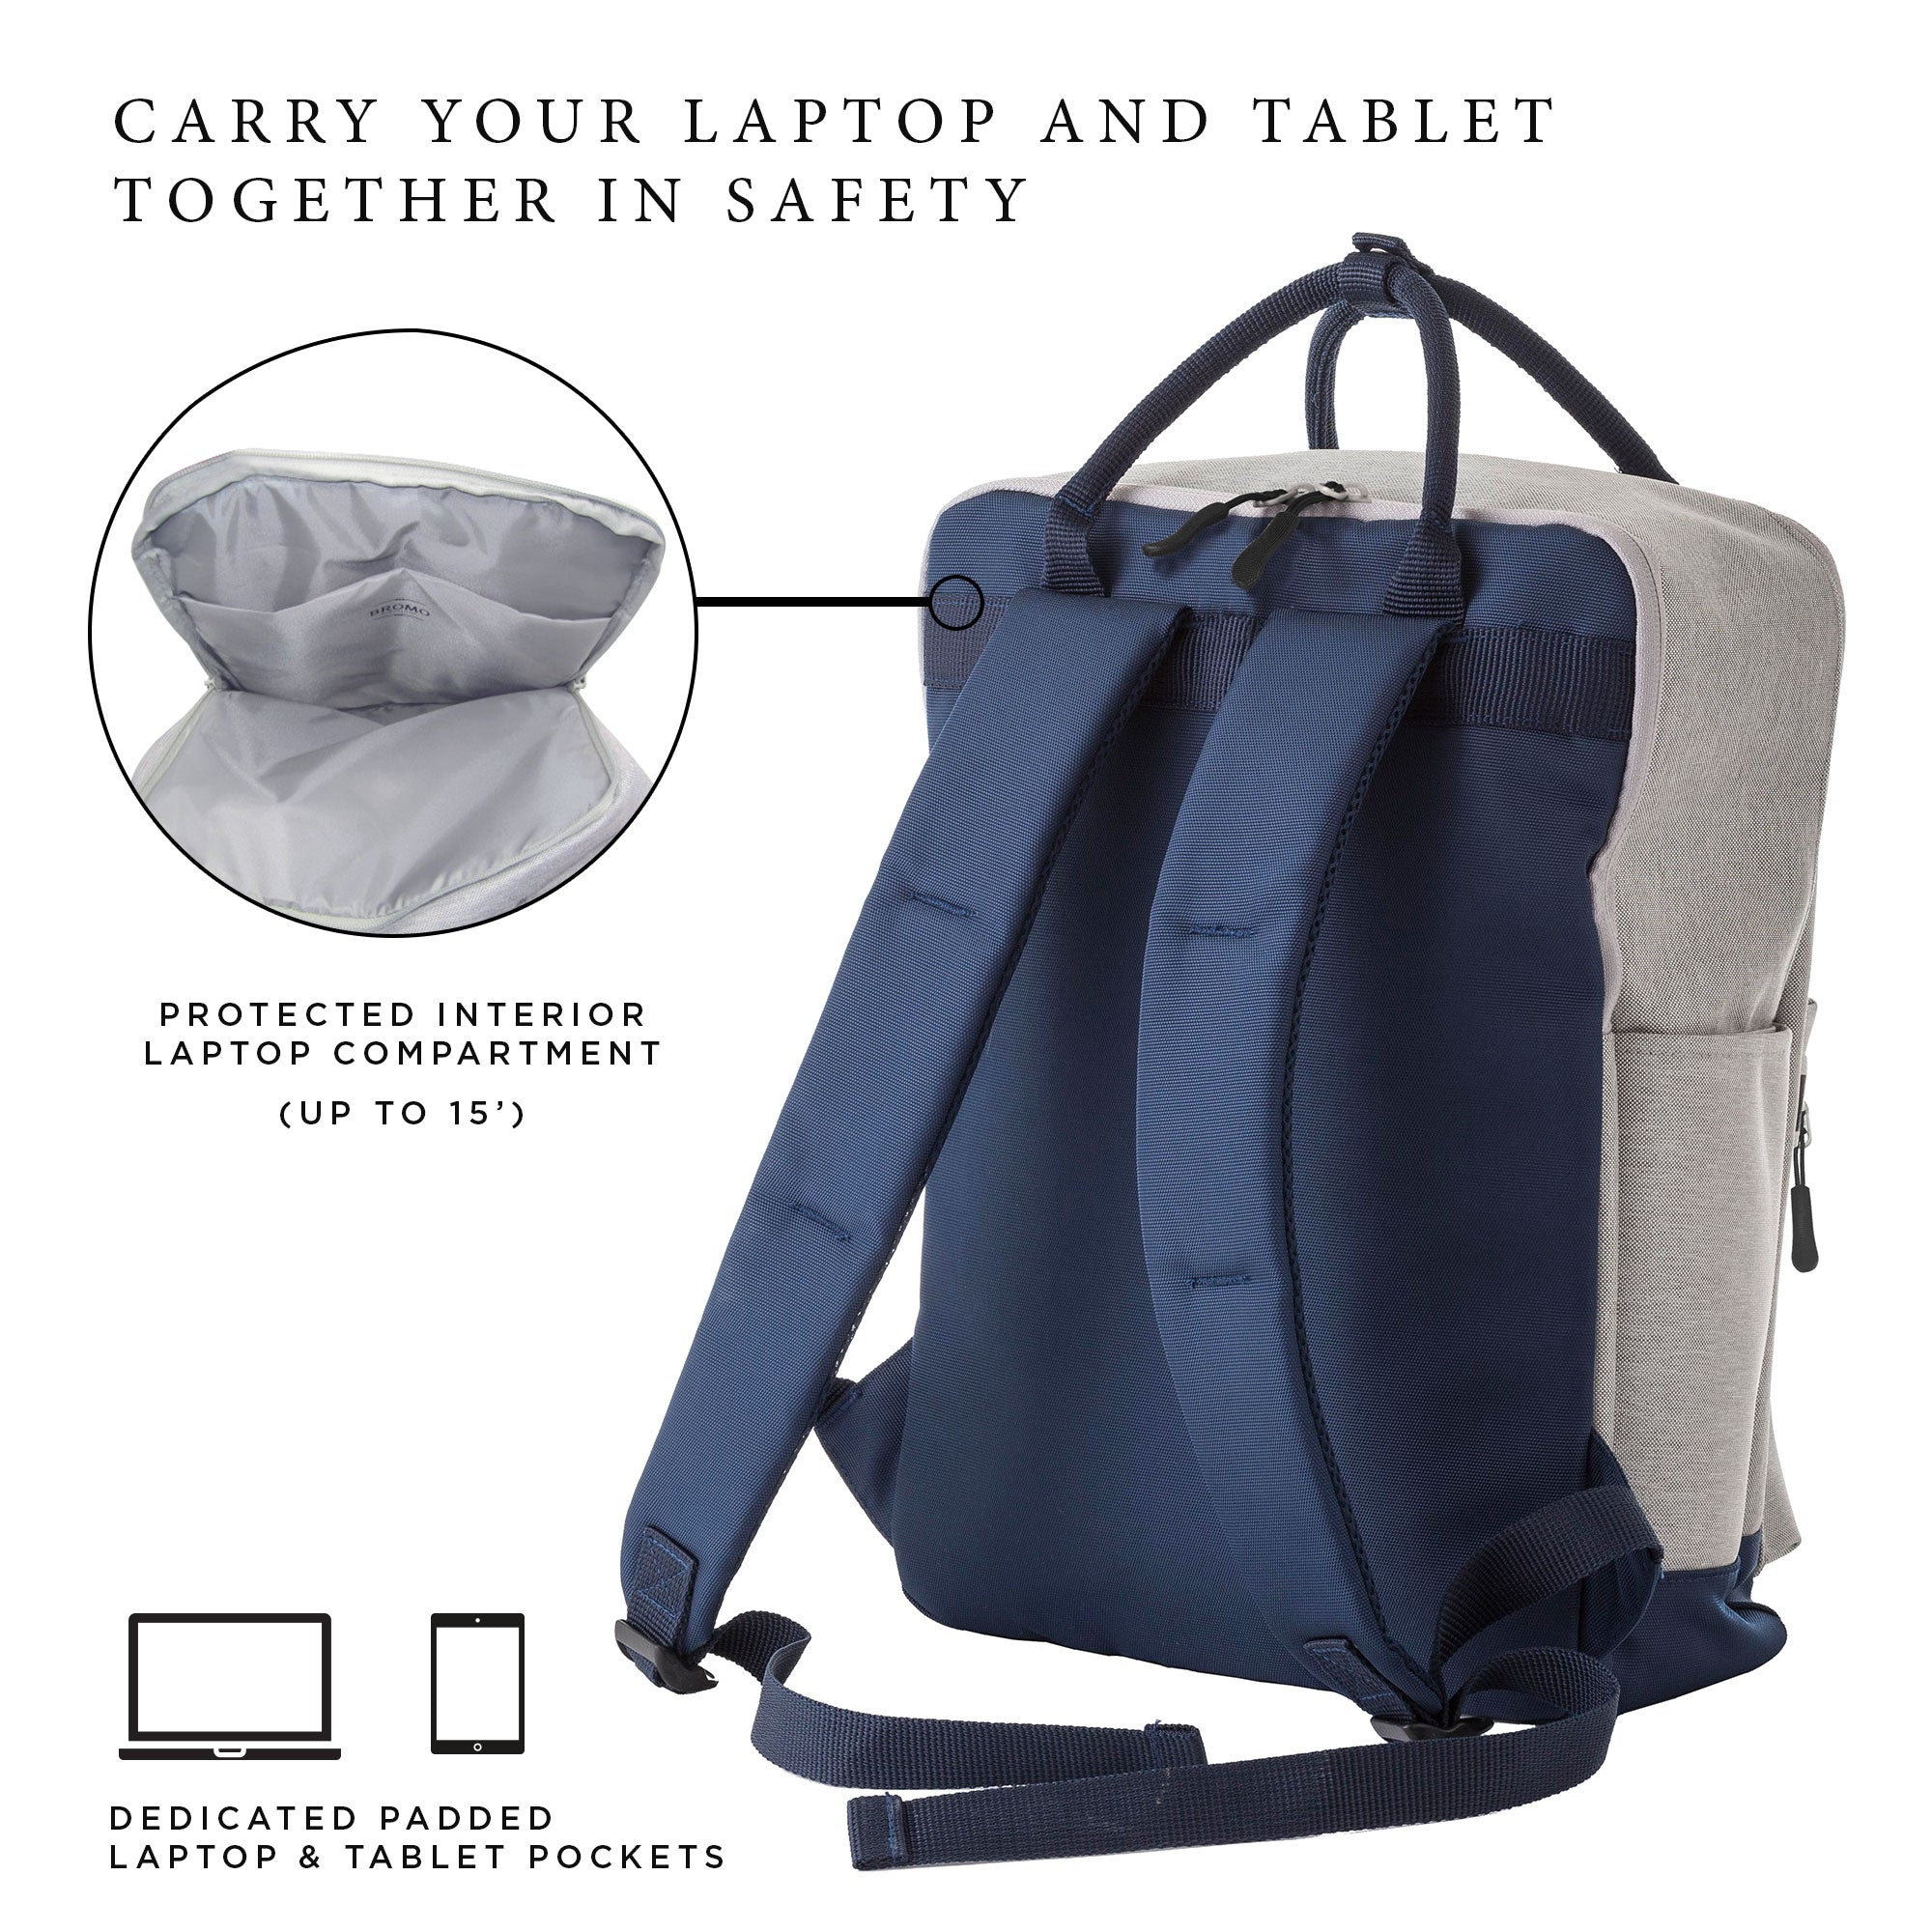 Swell Bromo Barcelona Colorado Laptop Backpack With Handles For 12 Download Free Architecture Designs Scobabritishbridgeorg